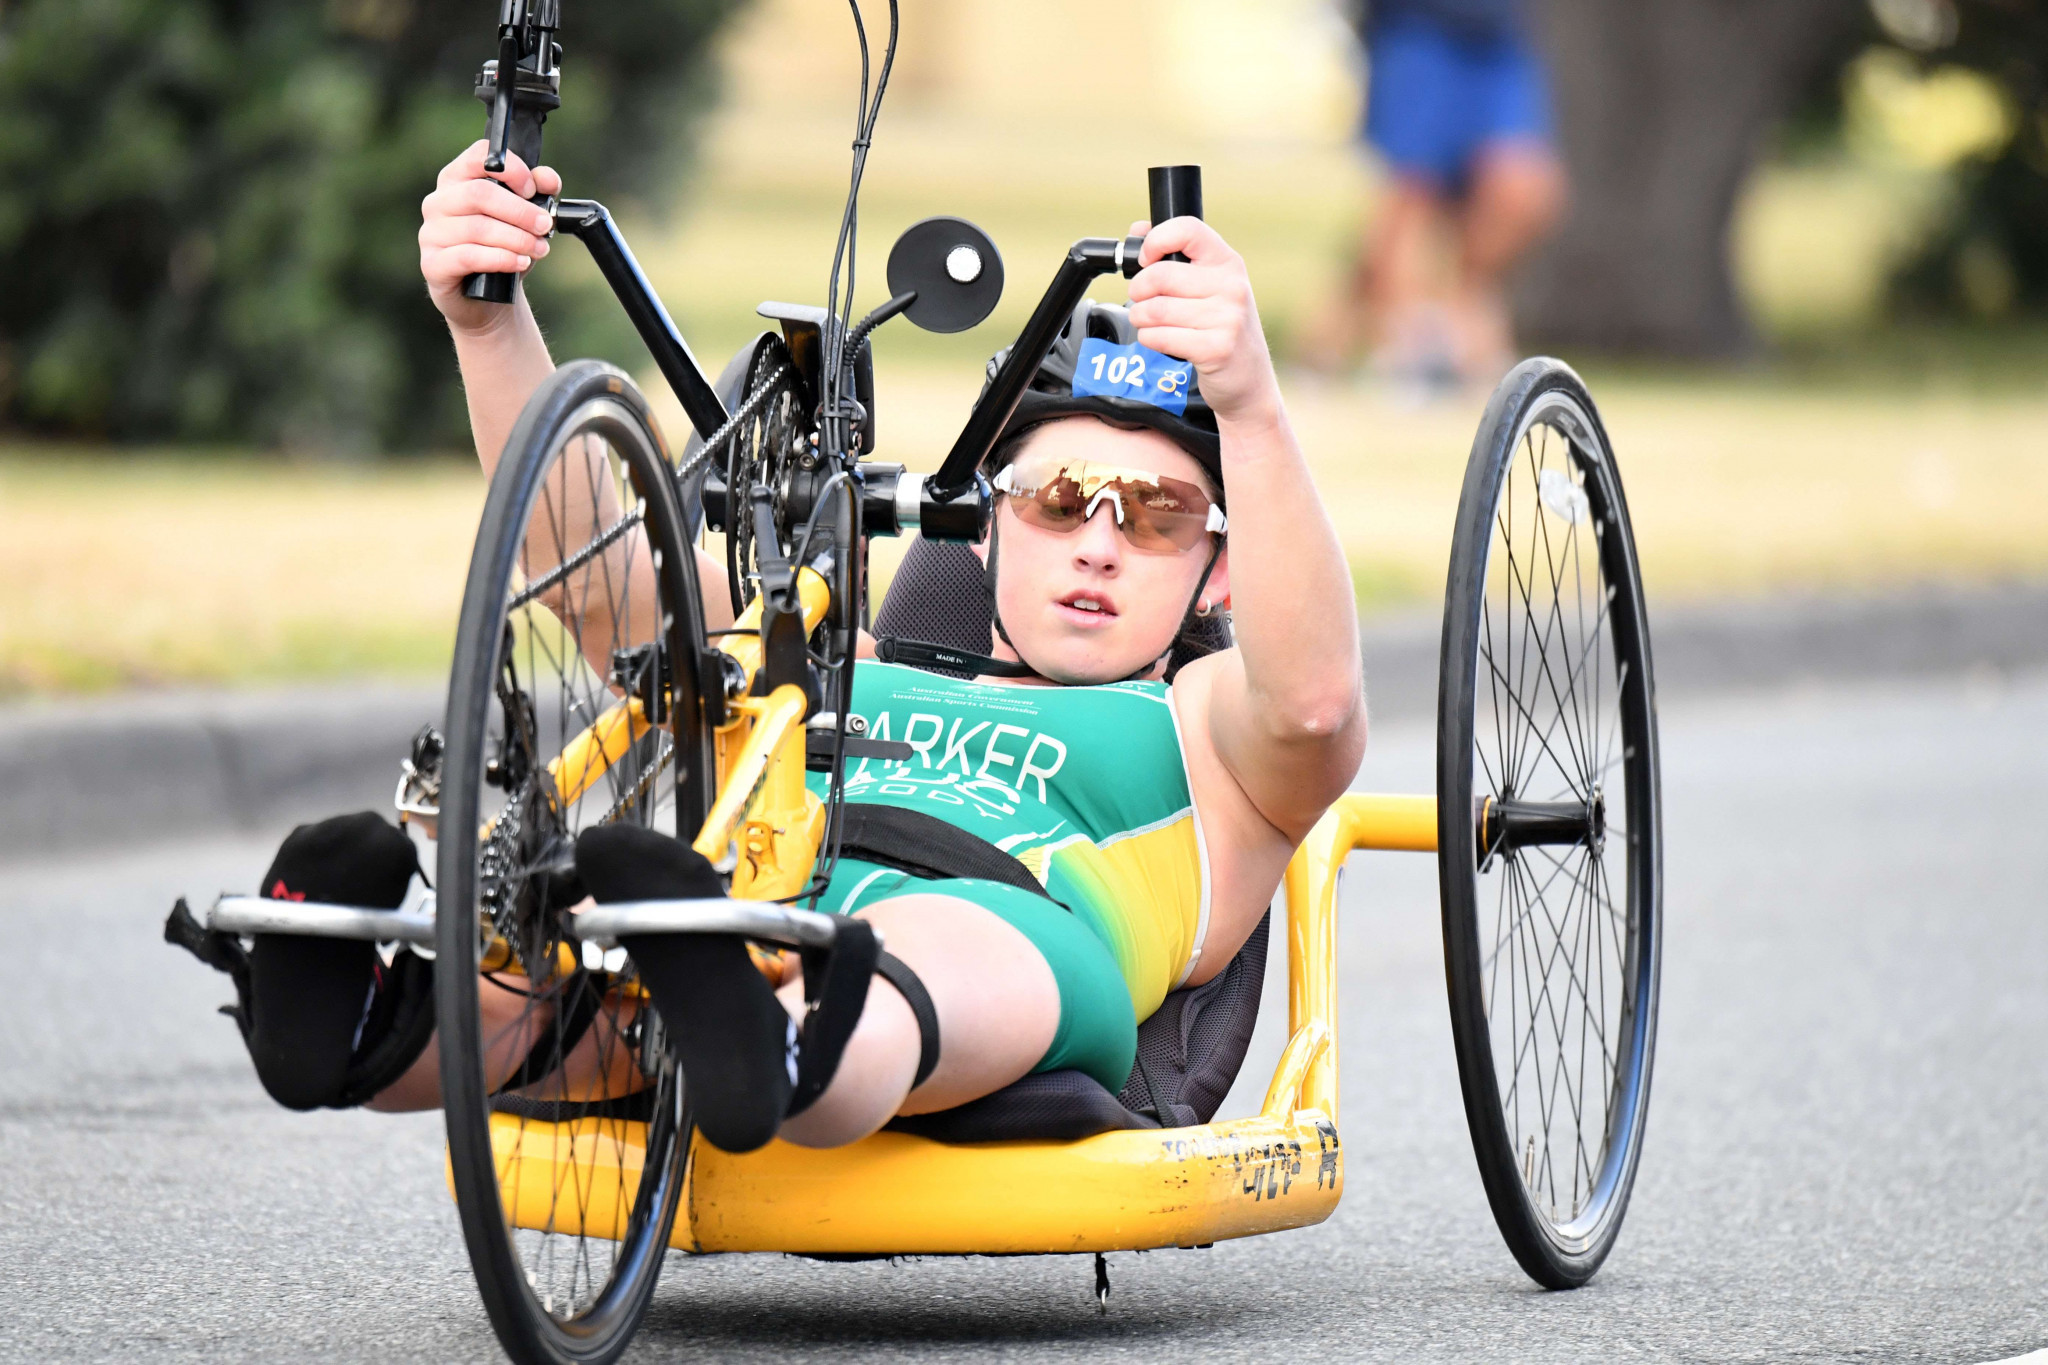 Parker makes sensational Para-triathlon switch just months after life-changing accident